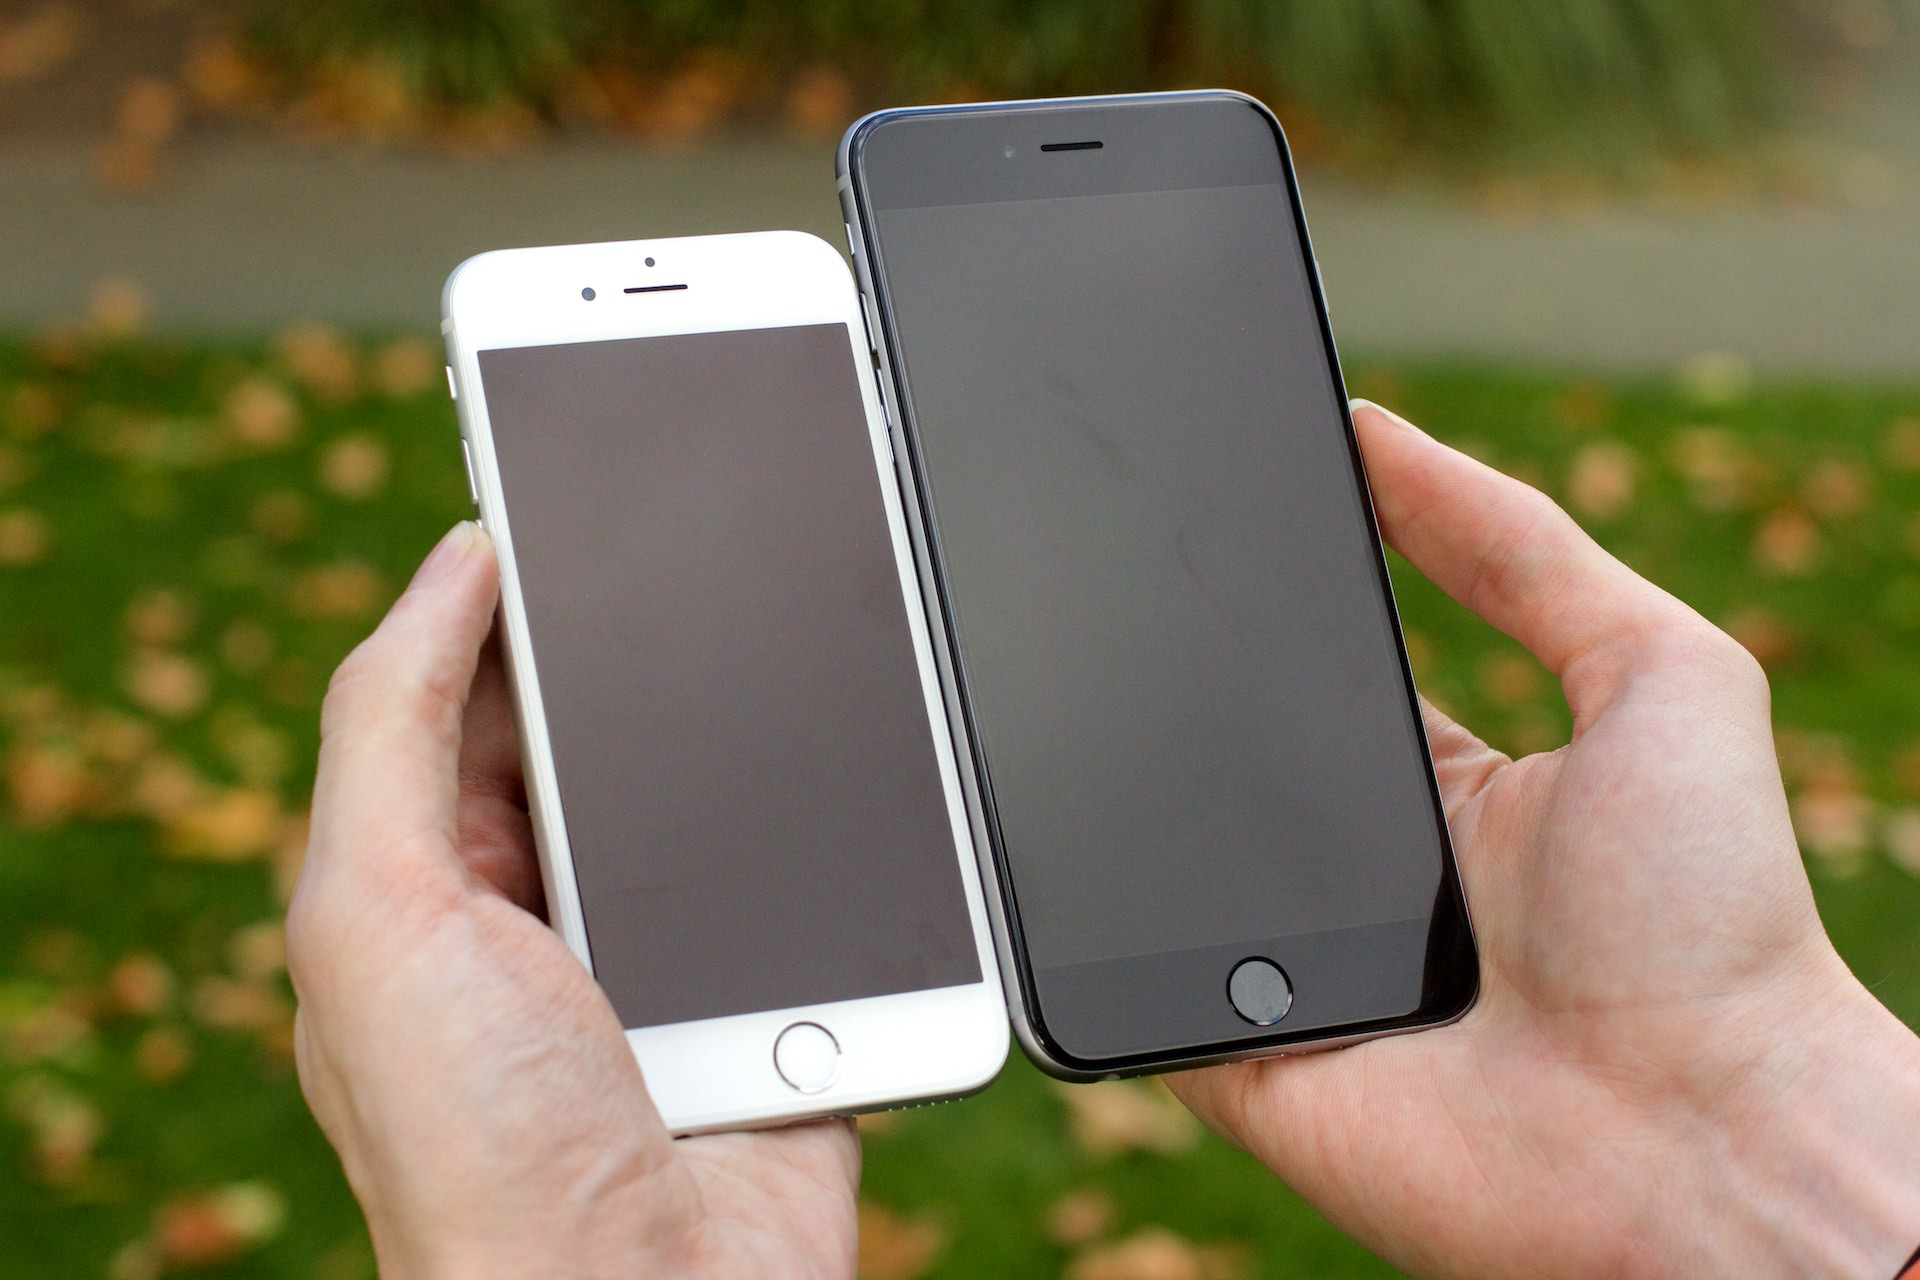 iPhone6comparison.jpg